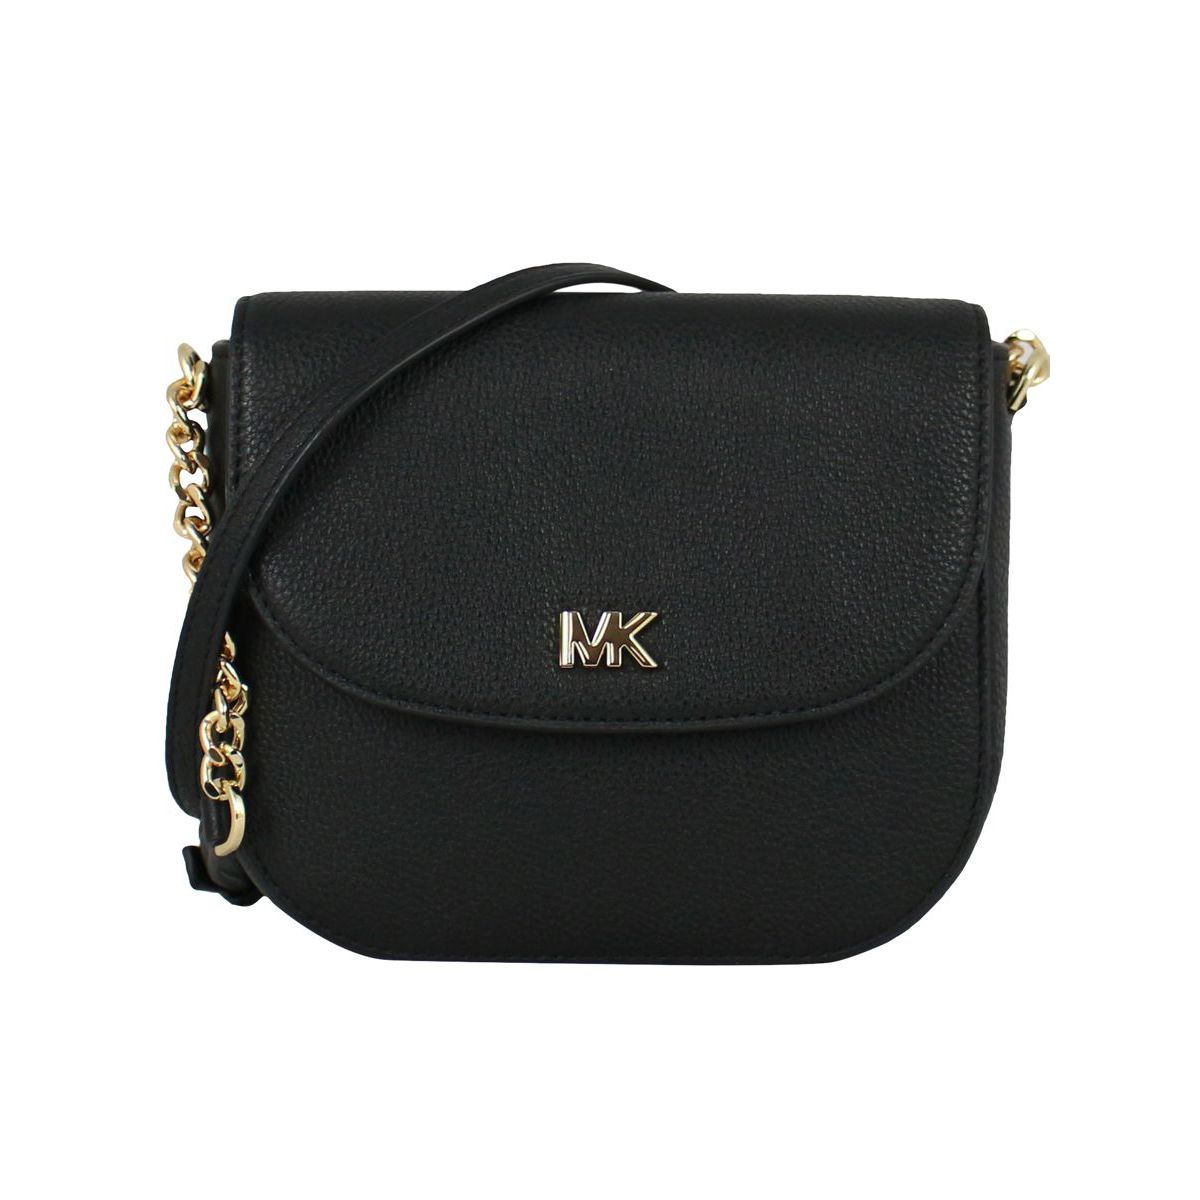 Half Dome shoulder bag in leather Black Michael Kors